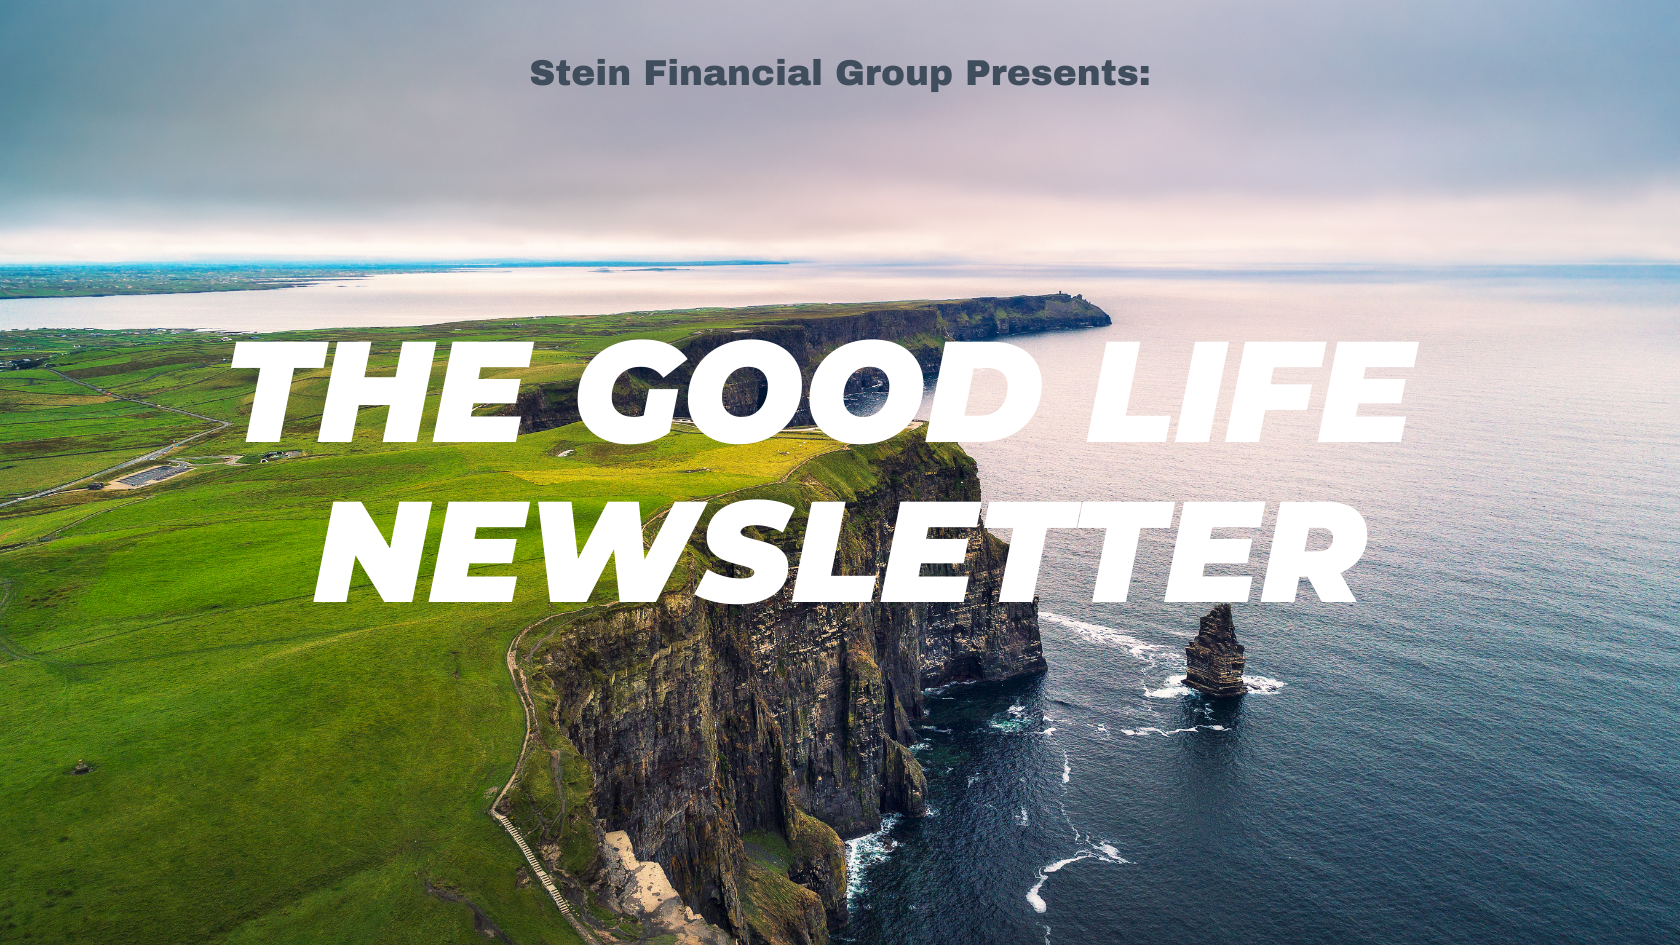 The Good Life Newsletter - A Difficult Week For Stocks Thumbnail